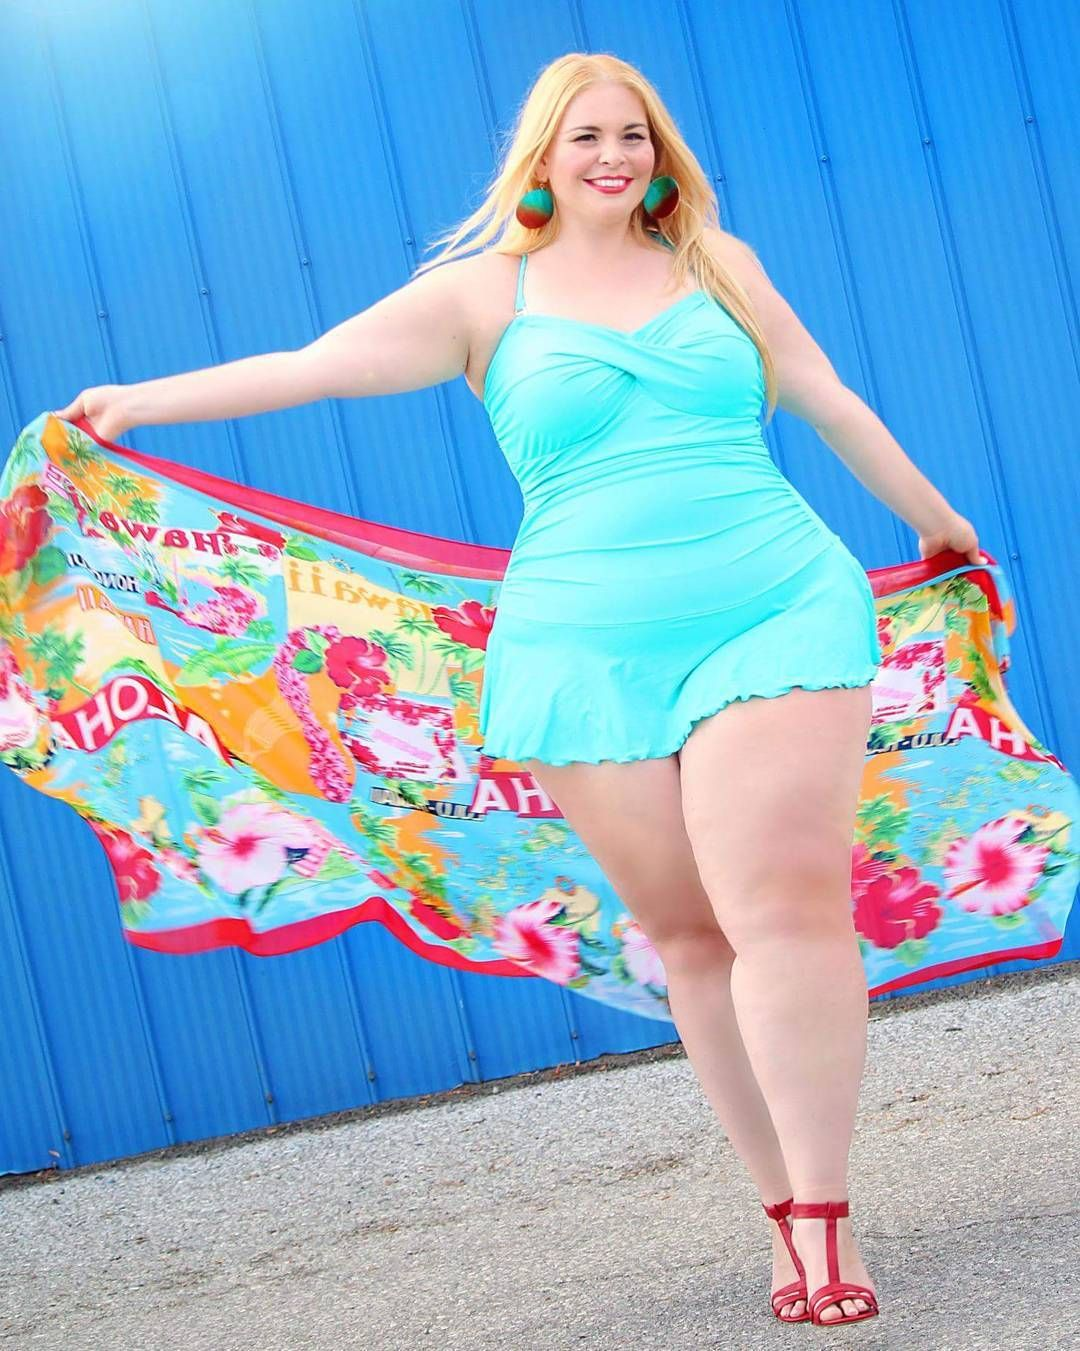 Pin by chester drors on Hot BBW | Pinterest